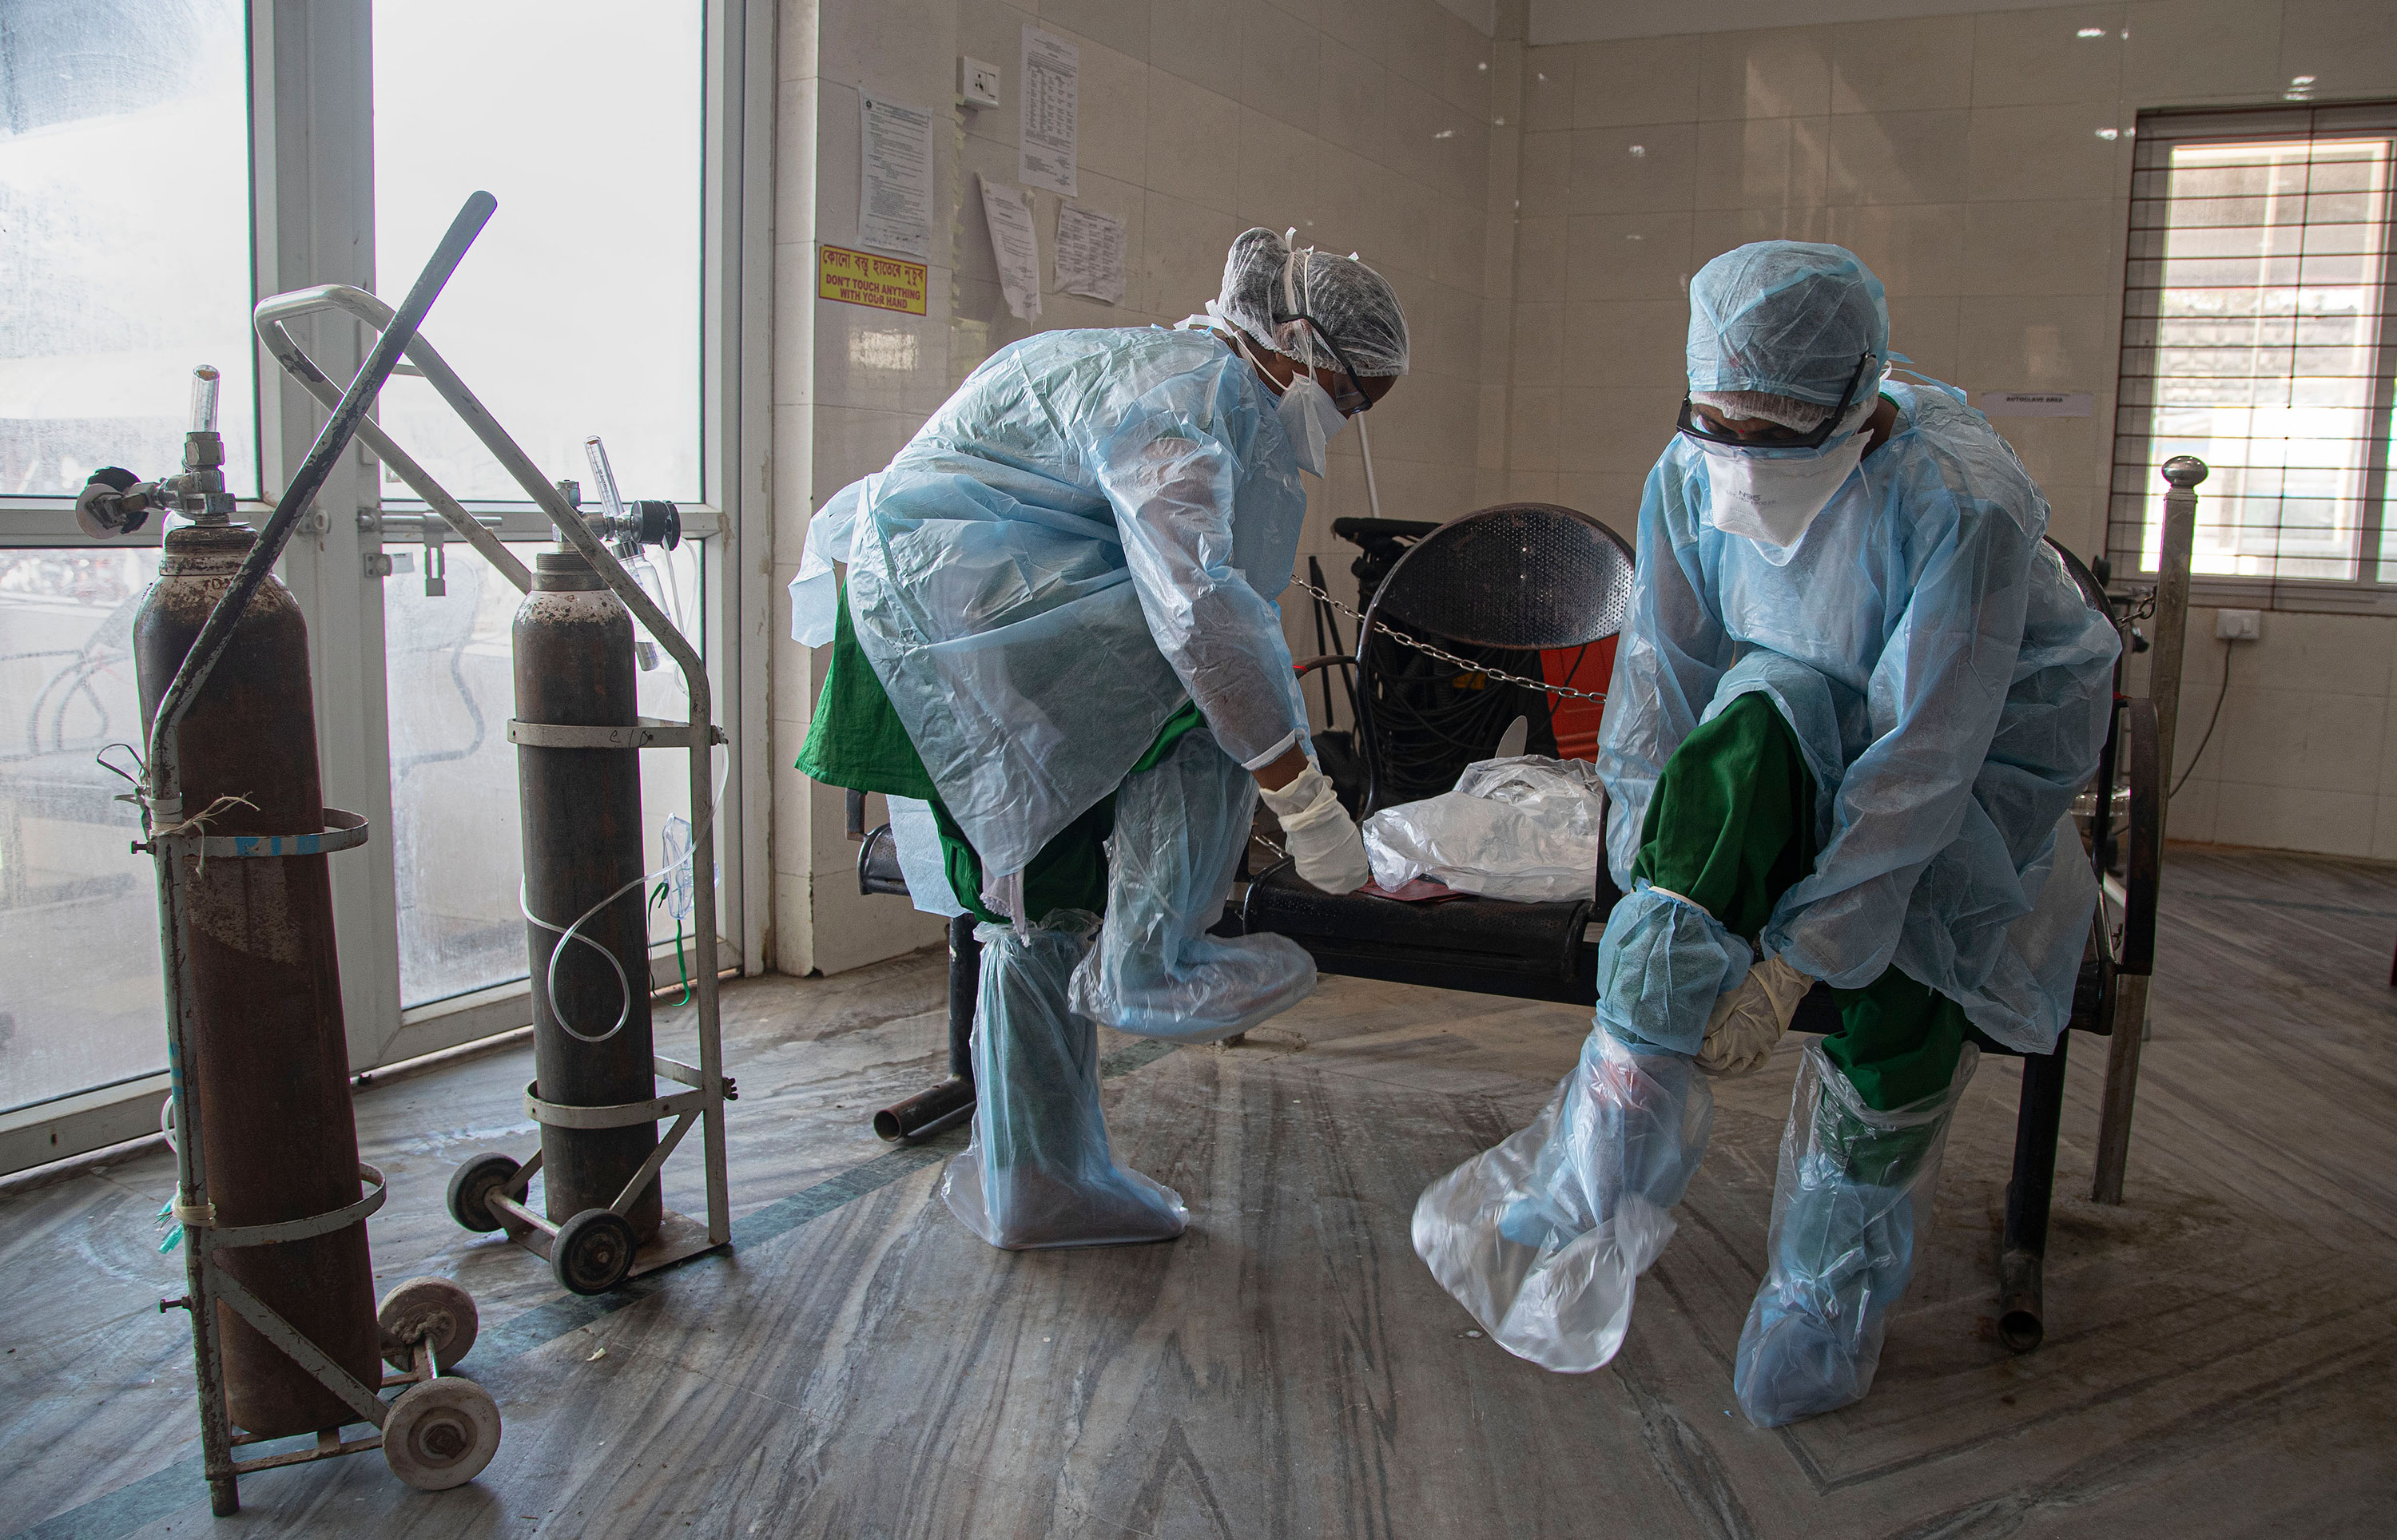 Health workers put on personal protective equipment before their shift at a Covid-19 check area in Gauhati, India, on May 1.